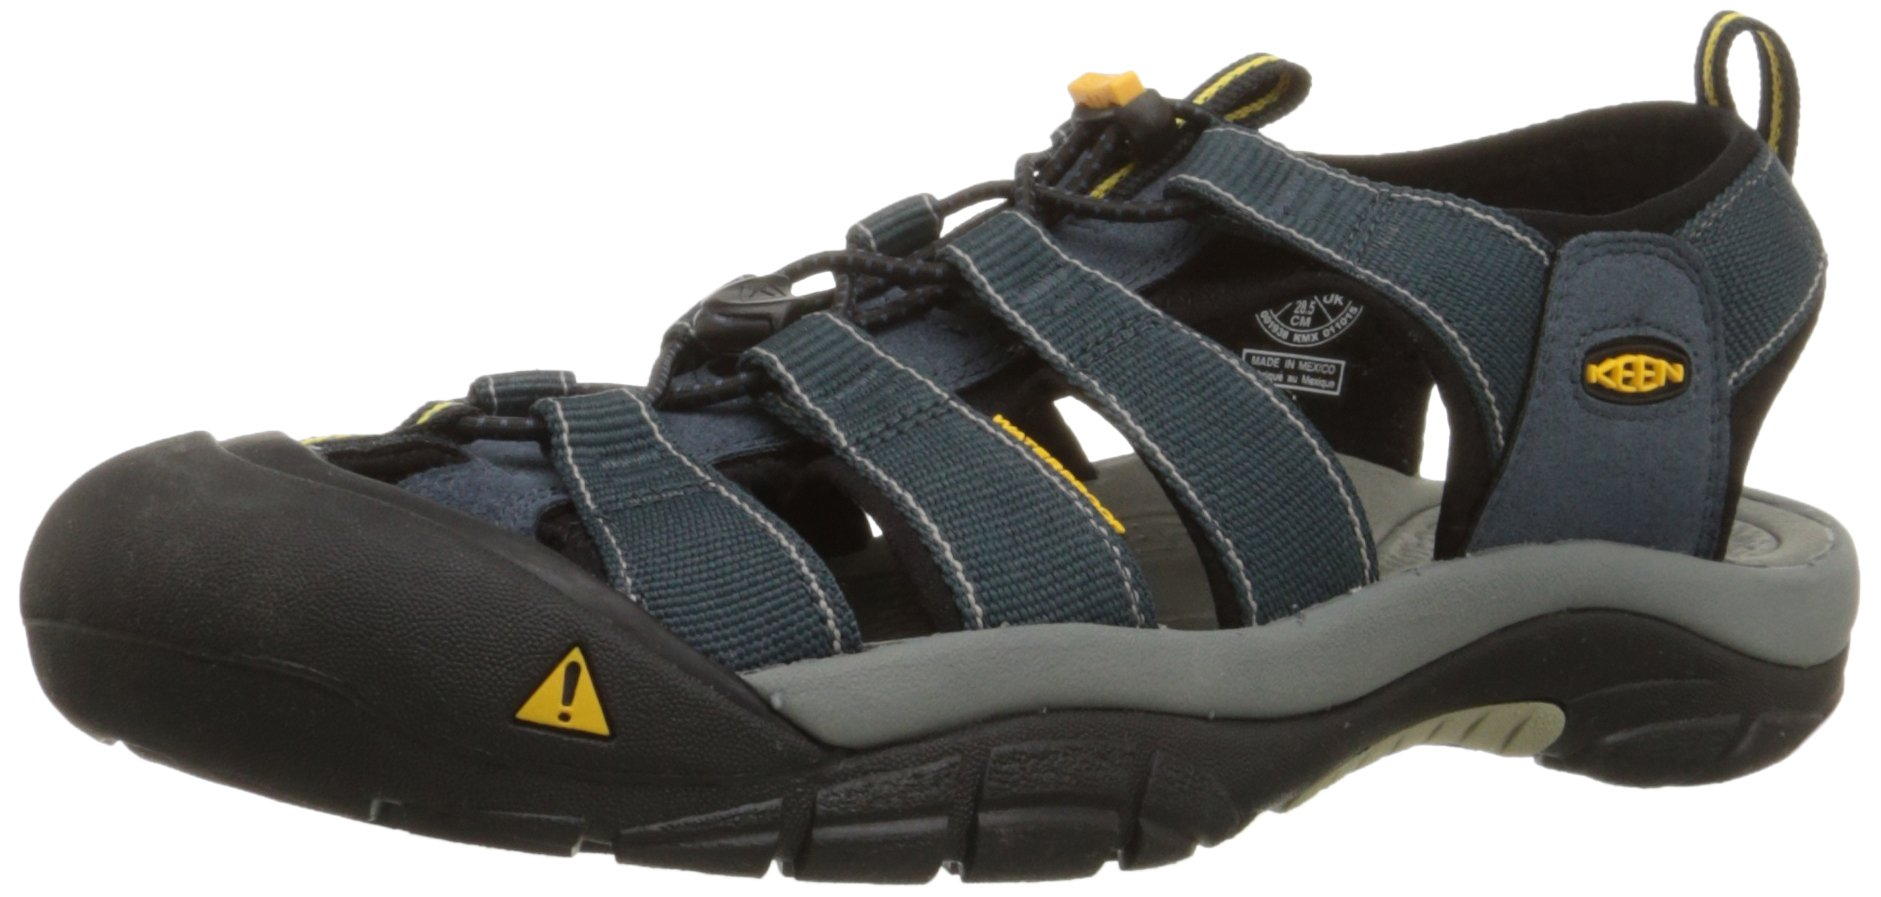 Keen Men's Newport H2 Sandal,Navy/Medium Grey,8 M US